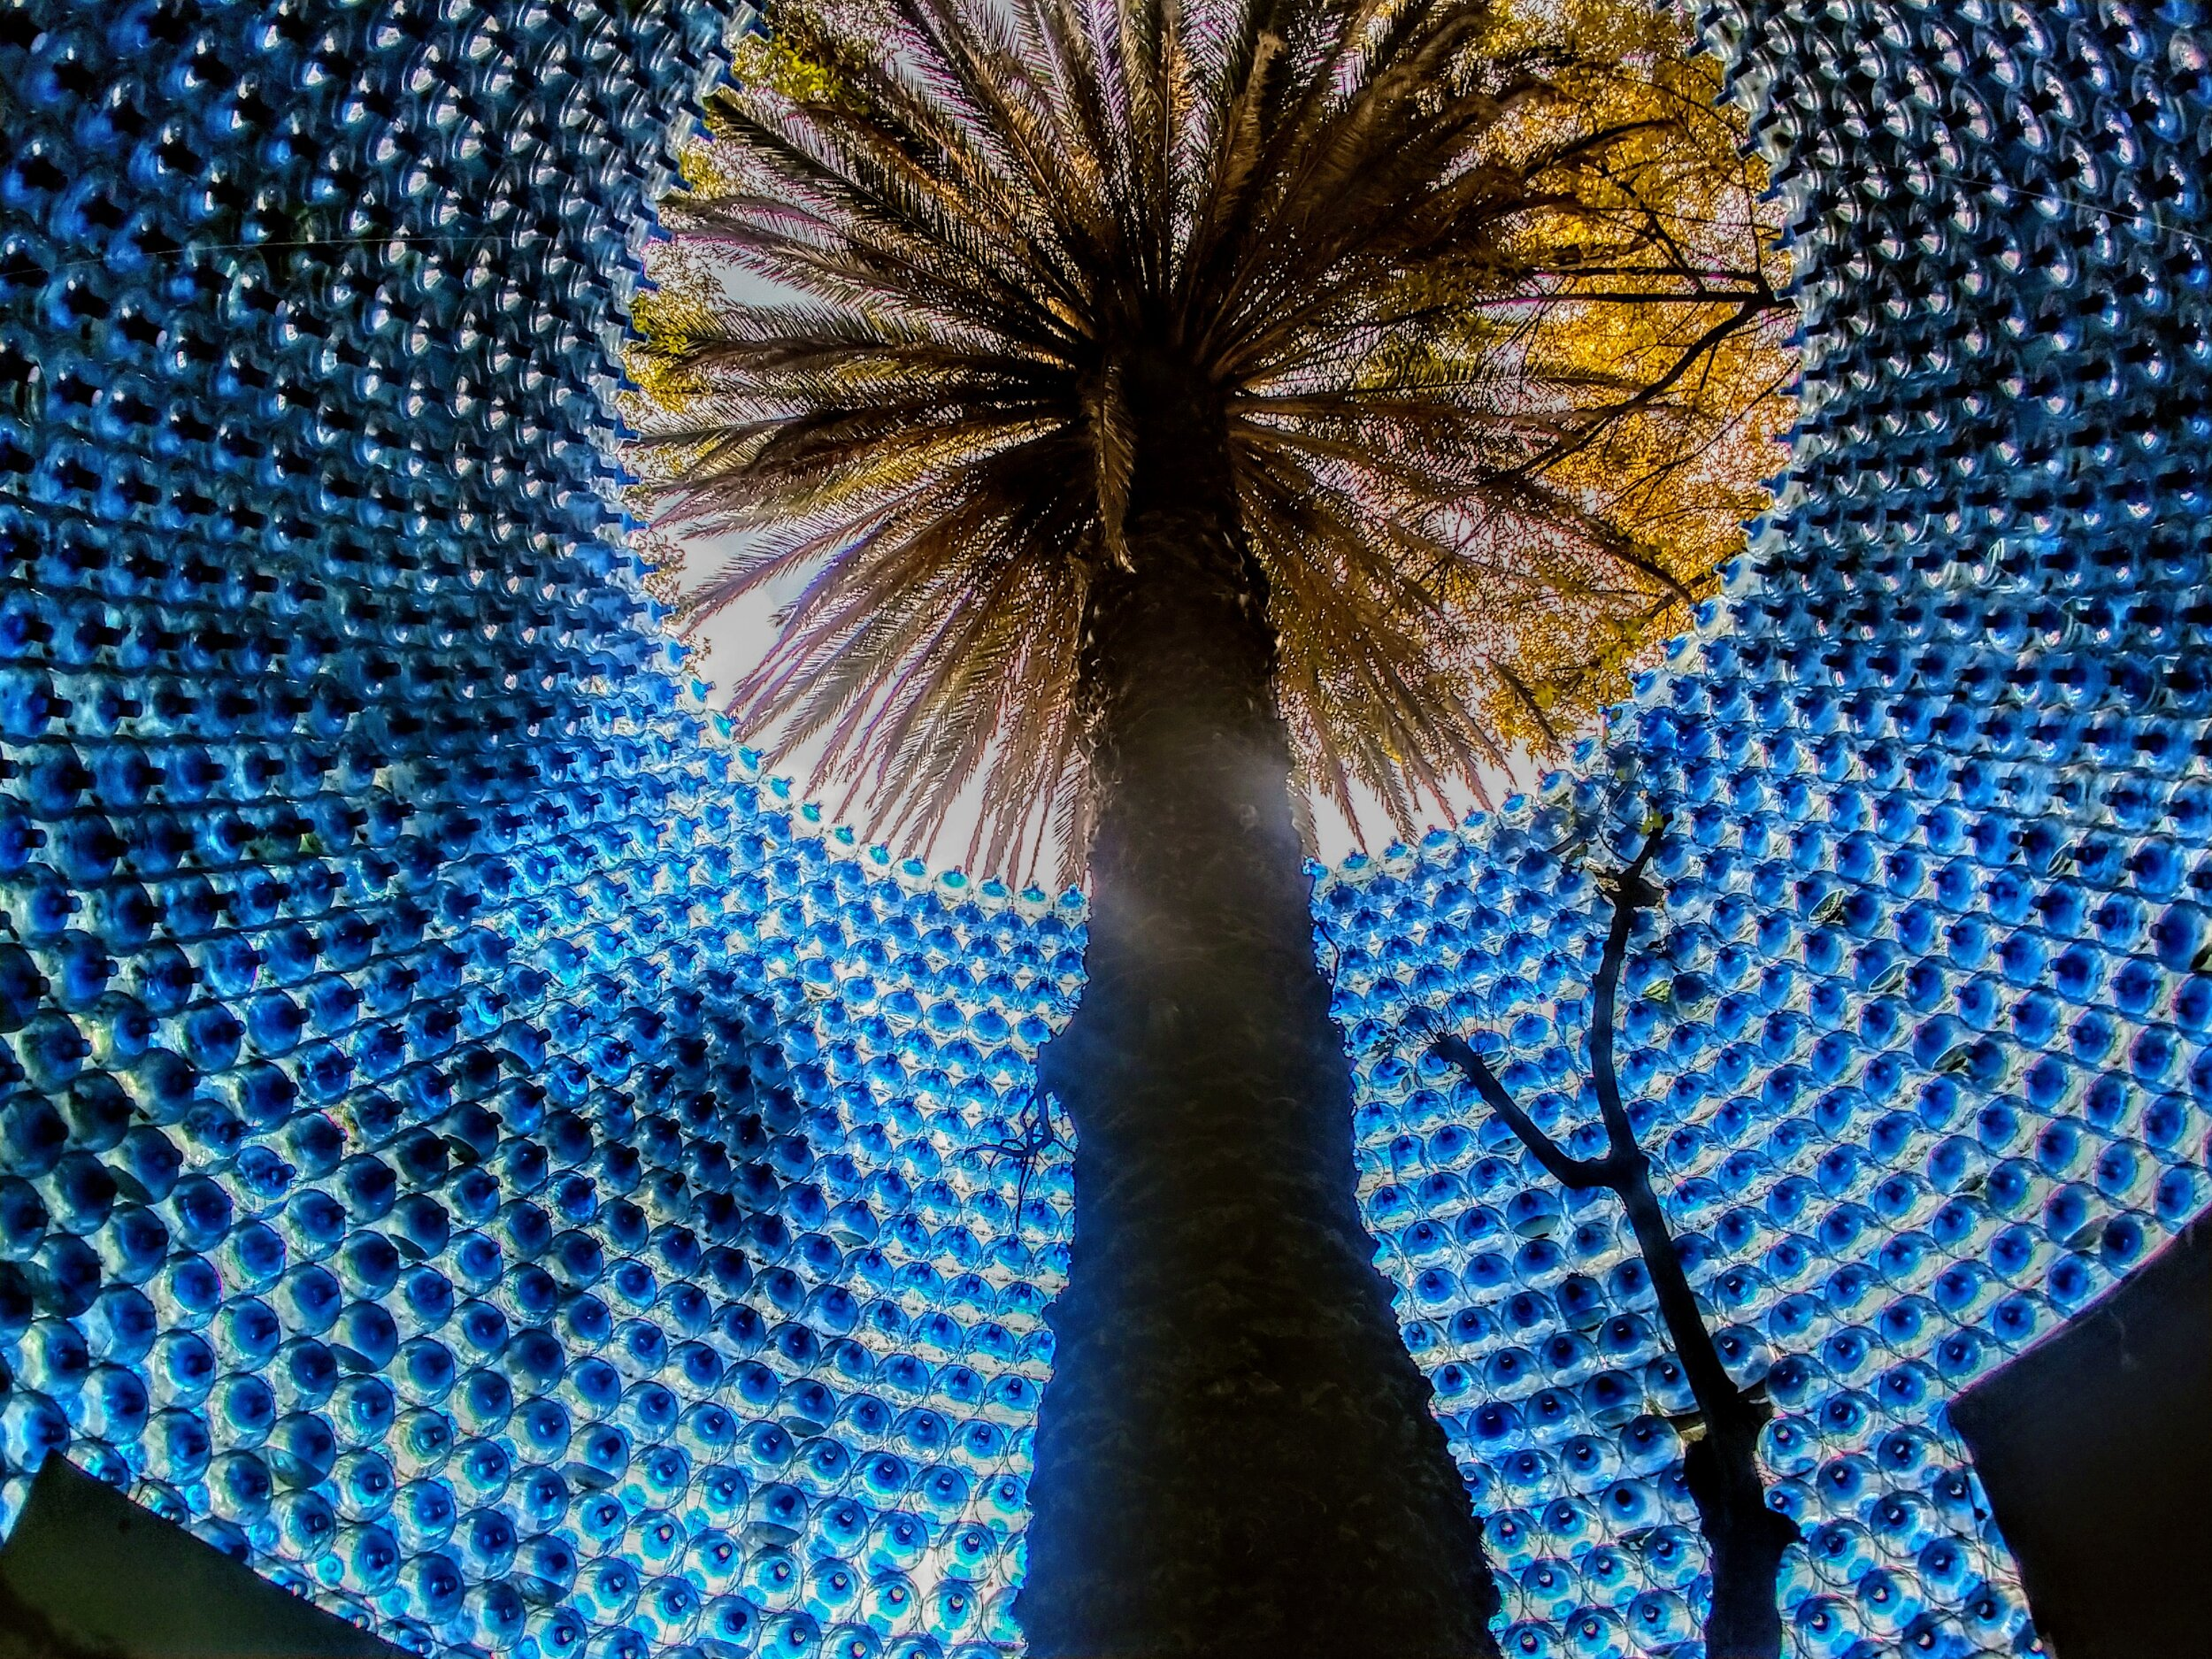 Made of recycled bottles, the wall which surrounds this tree is quite beautiful. - Mexico City, MX